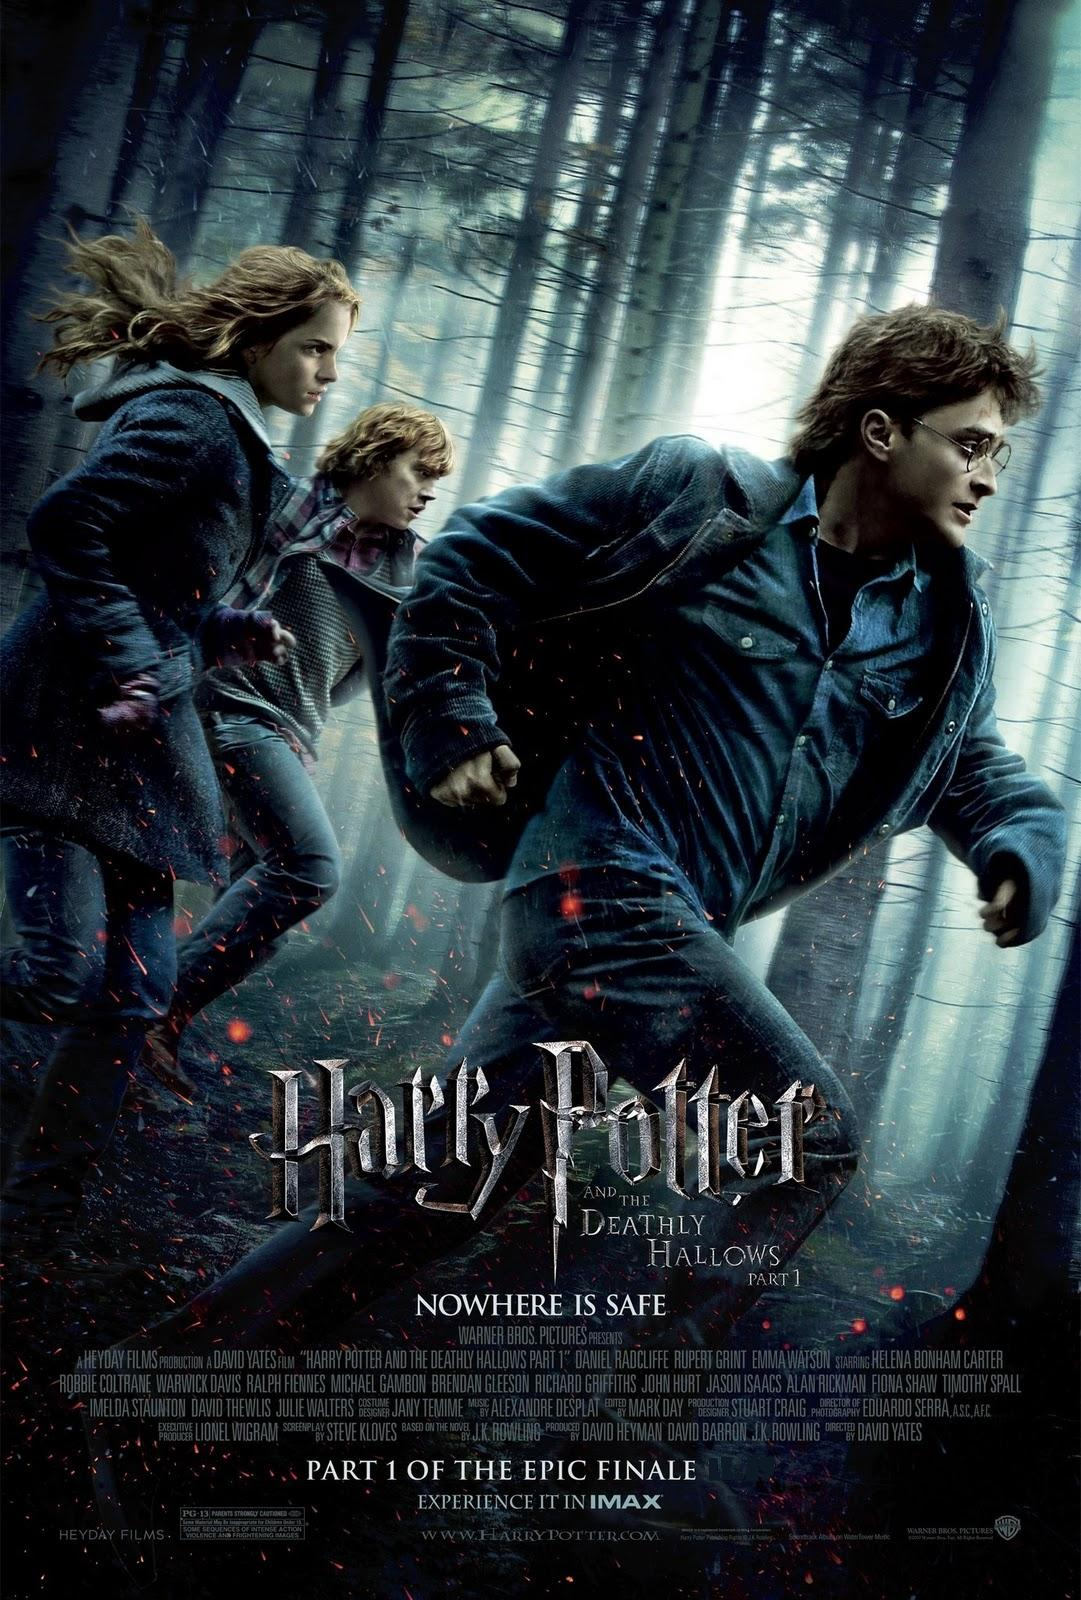 http://2.bp.blogspot.com/_SWtfCE48VEQ/TOvTF4mbDJI/AAAAAAAAAKI/gUnB0imfcsI/s1600/harry_potter_and_the_deathly_hallows_part_1_movie_poster2.jpg